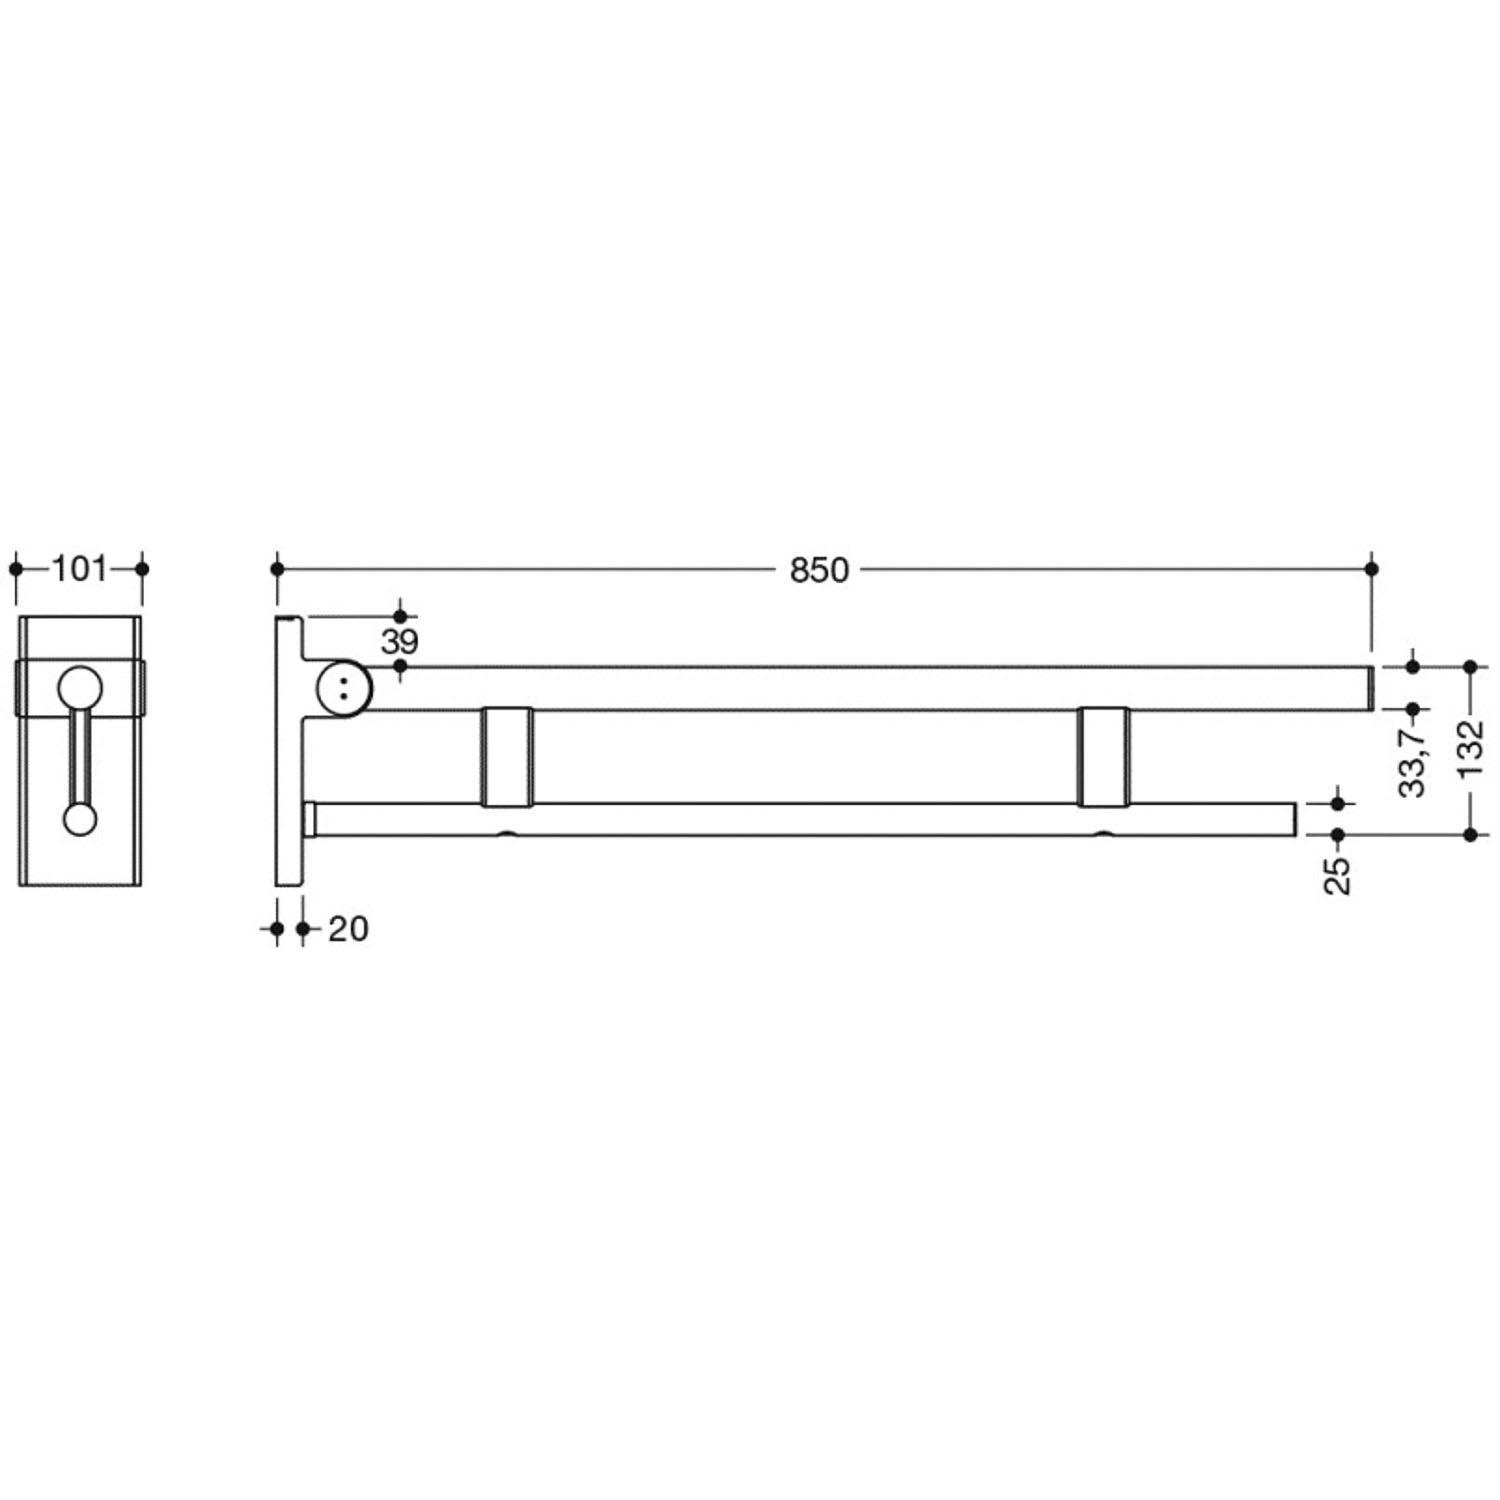 850mm Freestyle Removable Hinged Grab Rail Set with a matt black finish dimensional drawing